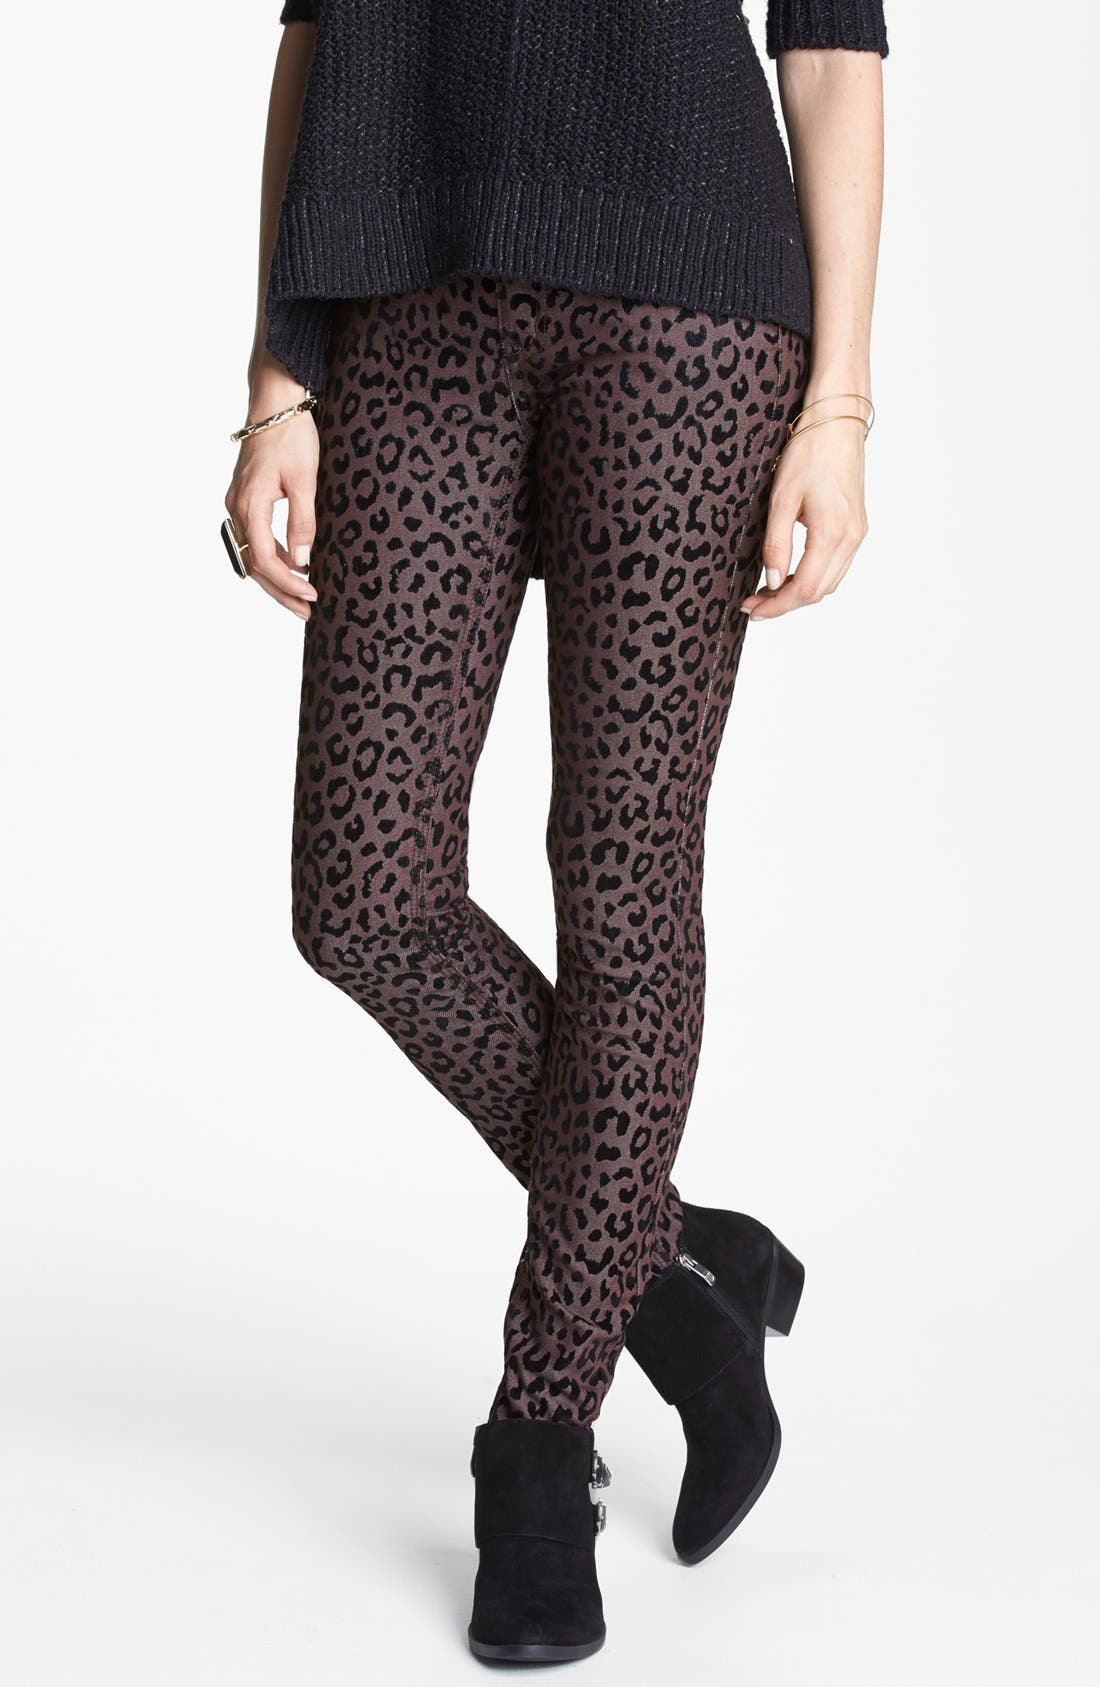 Alternate Image 1 Selected - Free People Leopard Flocked Ankle Pants